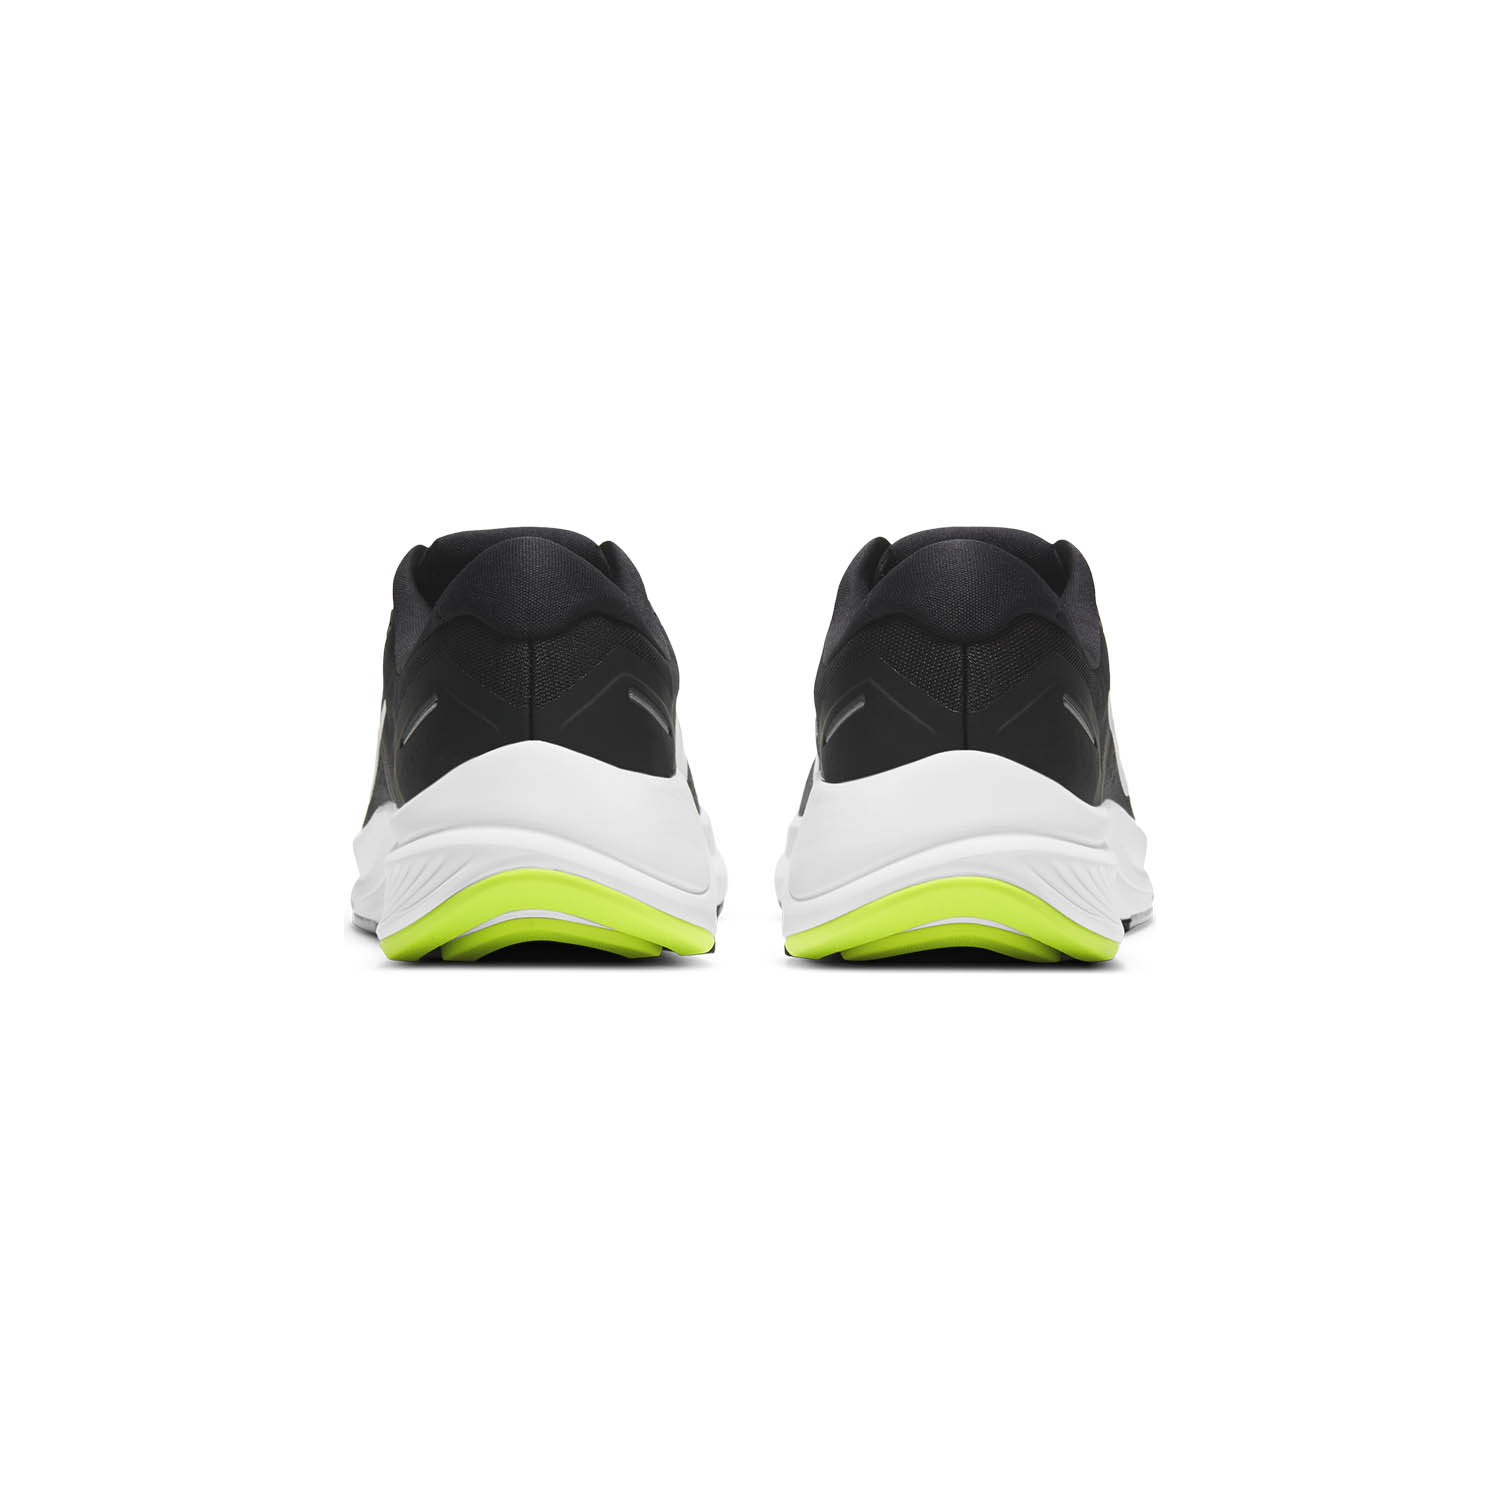 Nike Air Zoom Structure 23 - Black/Metallic Silver/Volt/Anthracite